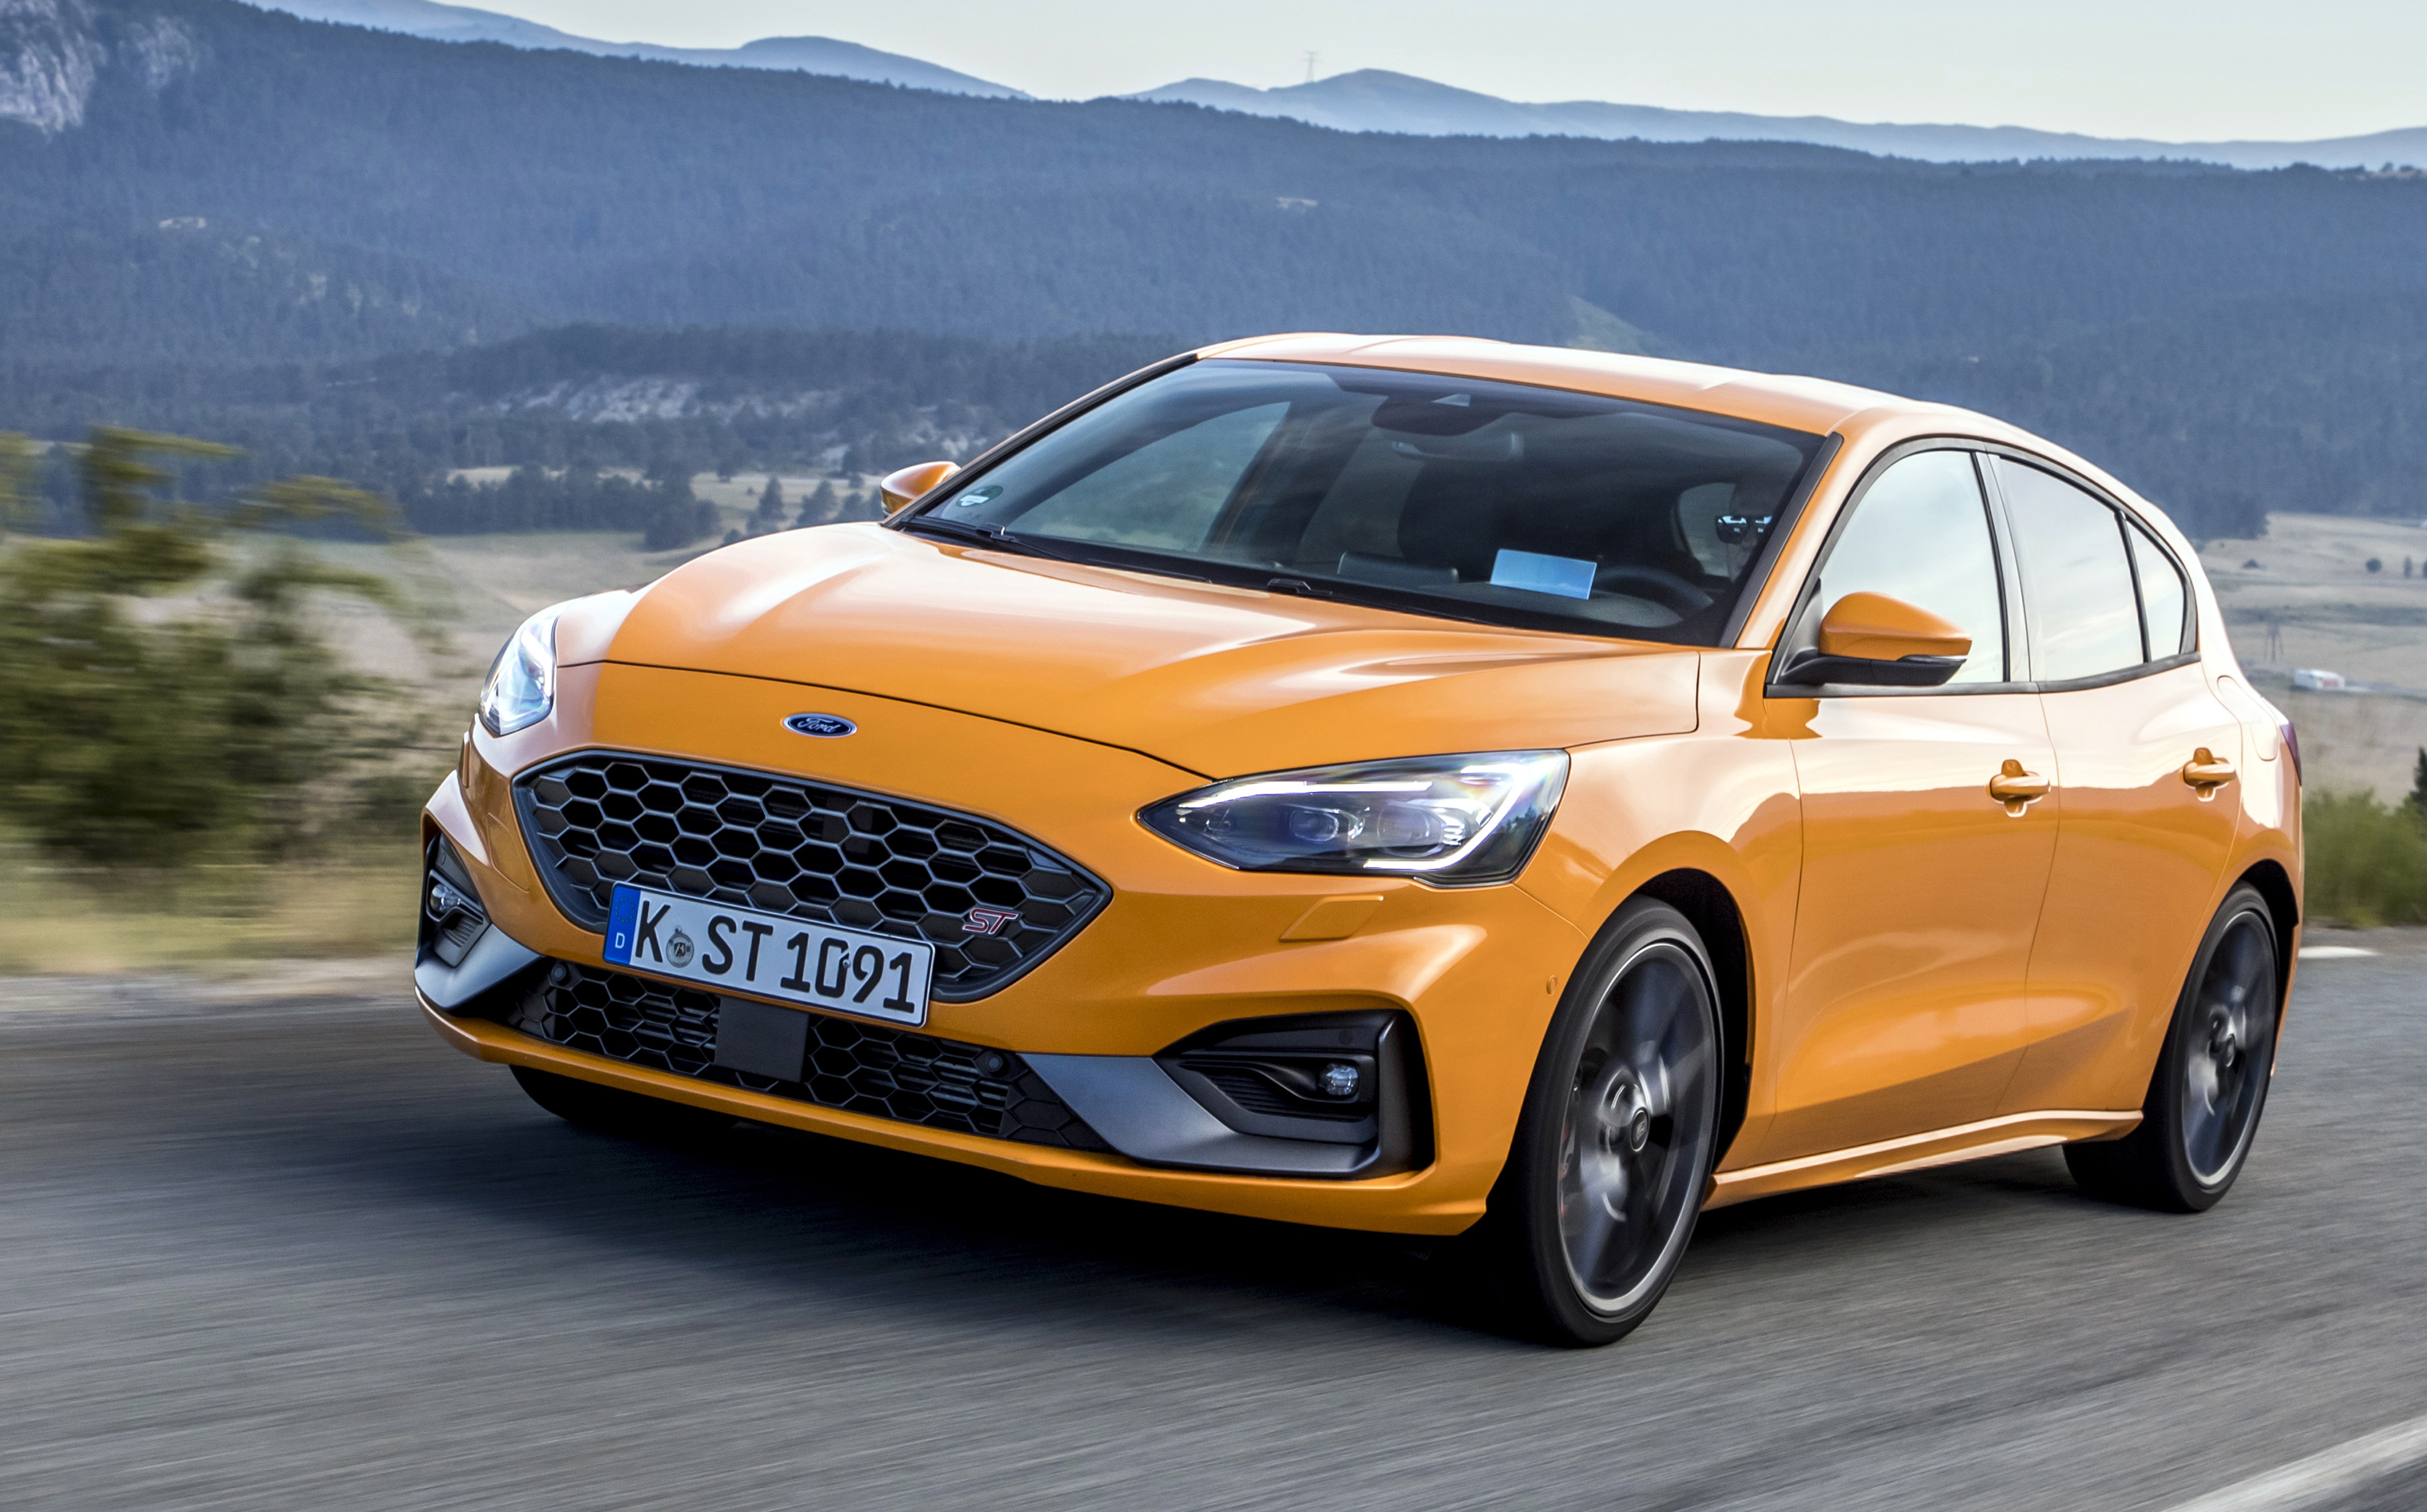 New Generation Ford Focus ST